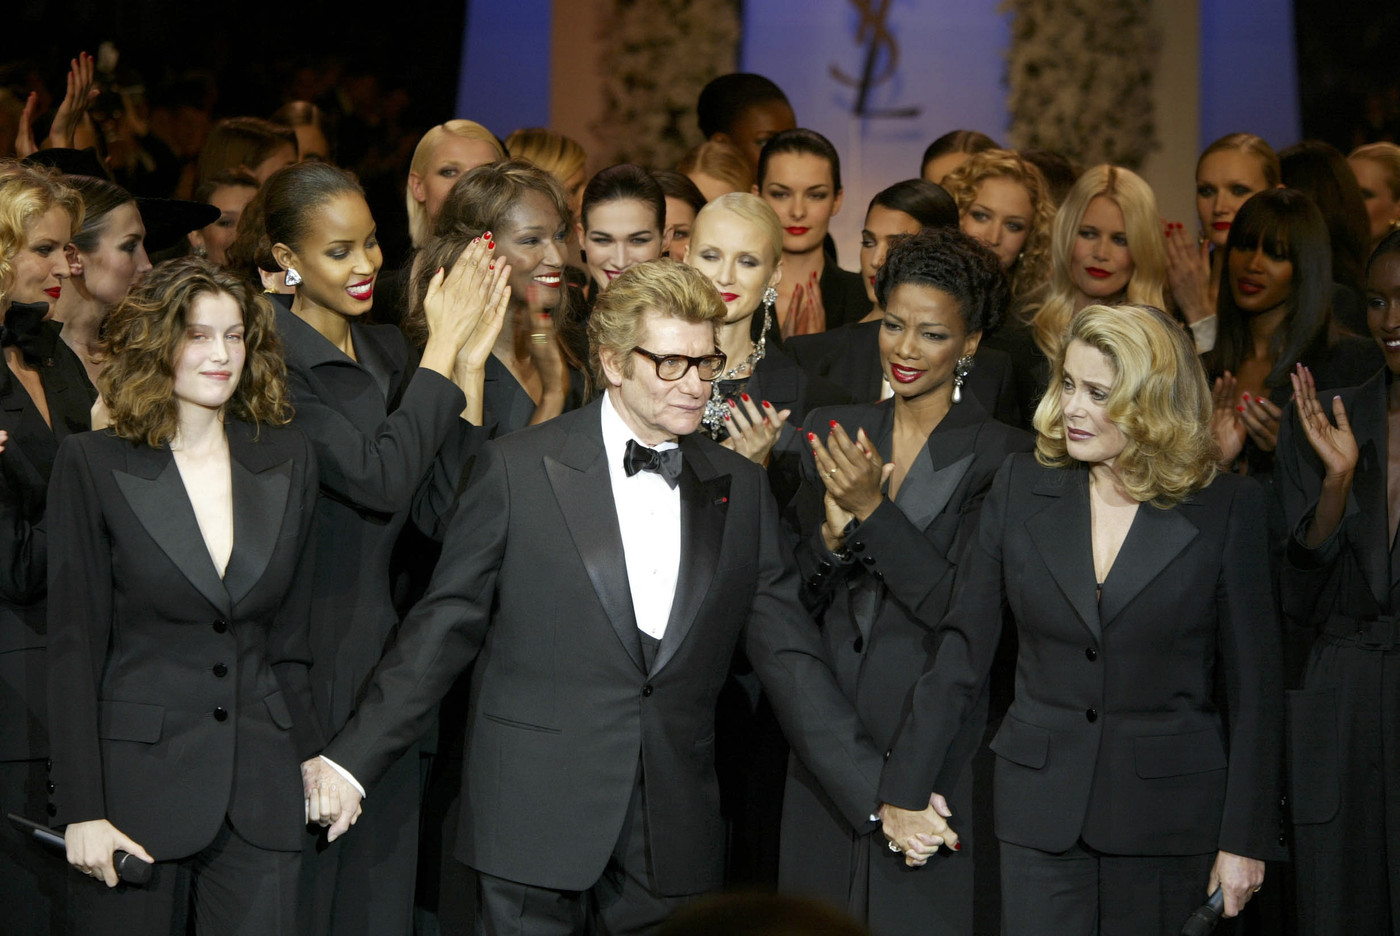 Yves Saint Laurent with Laetitia Casta and Catrine Deneuve at finale of Yves Saint Laurent Spring Summer 2002 Haute Couture show / via fashioned by love british fashion blog